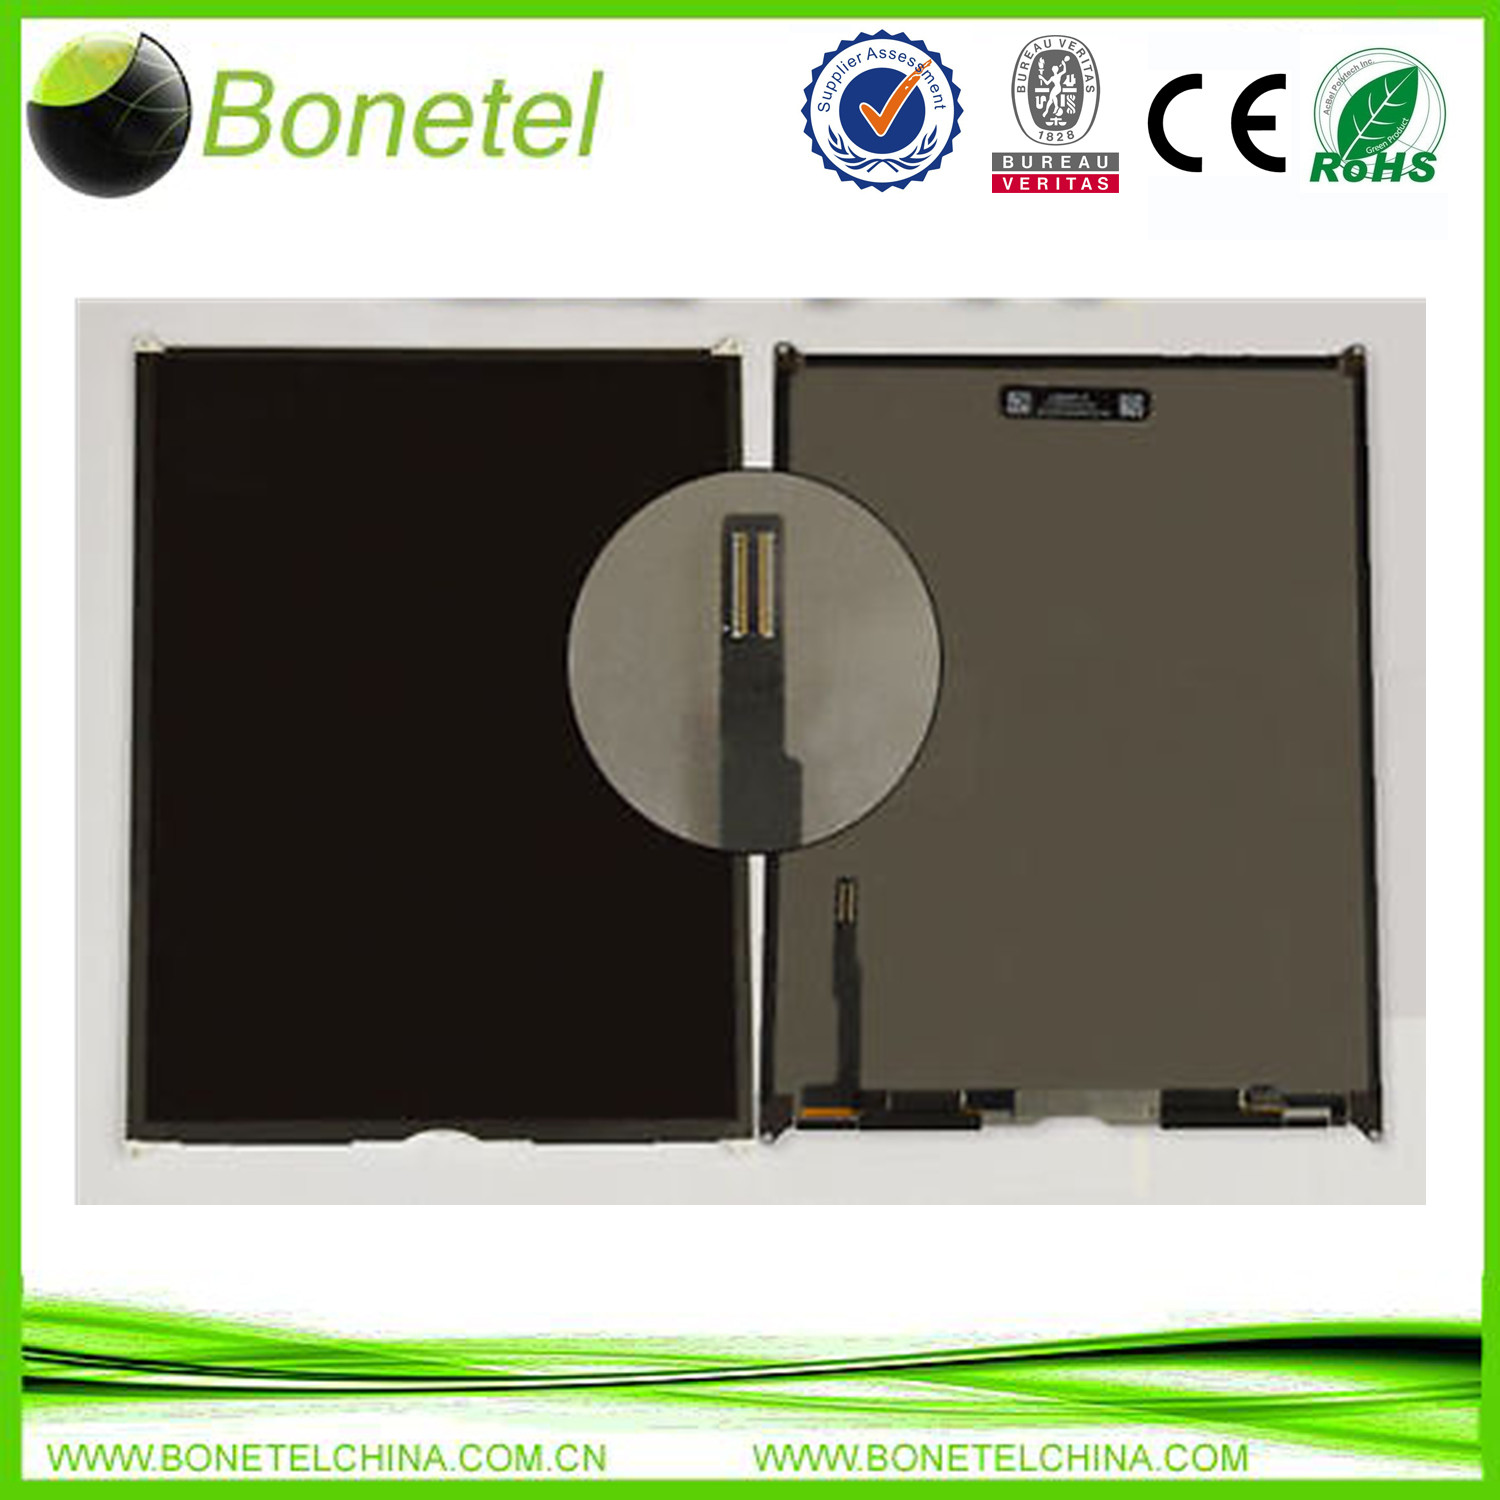 For iPad 5 air Replacement LCD Display Screen Panel Retina 3G 4G